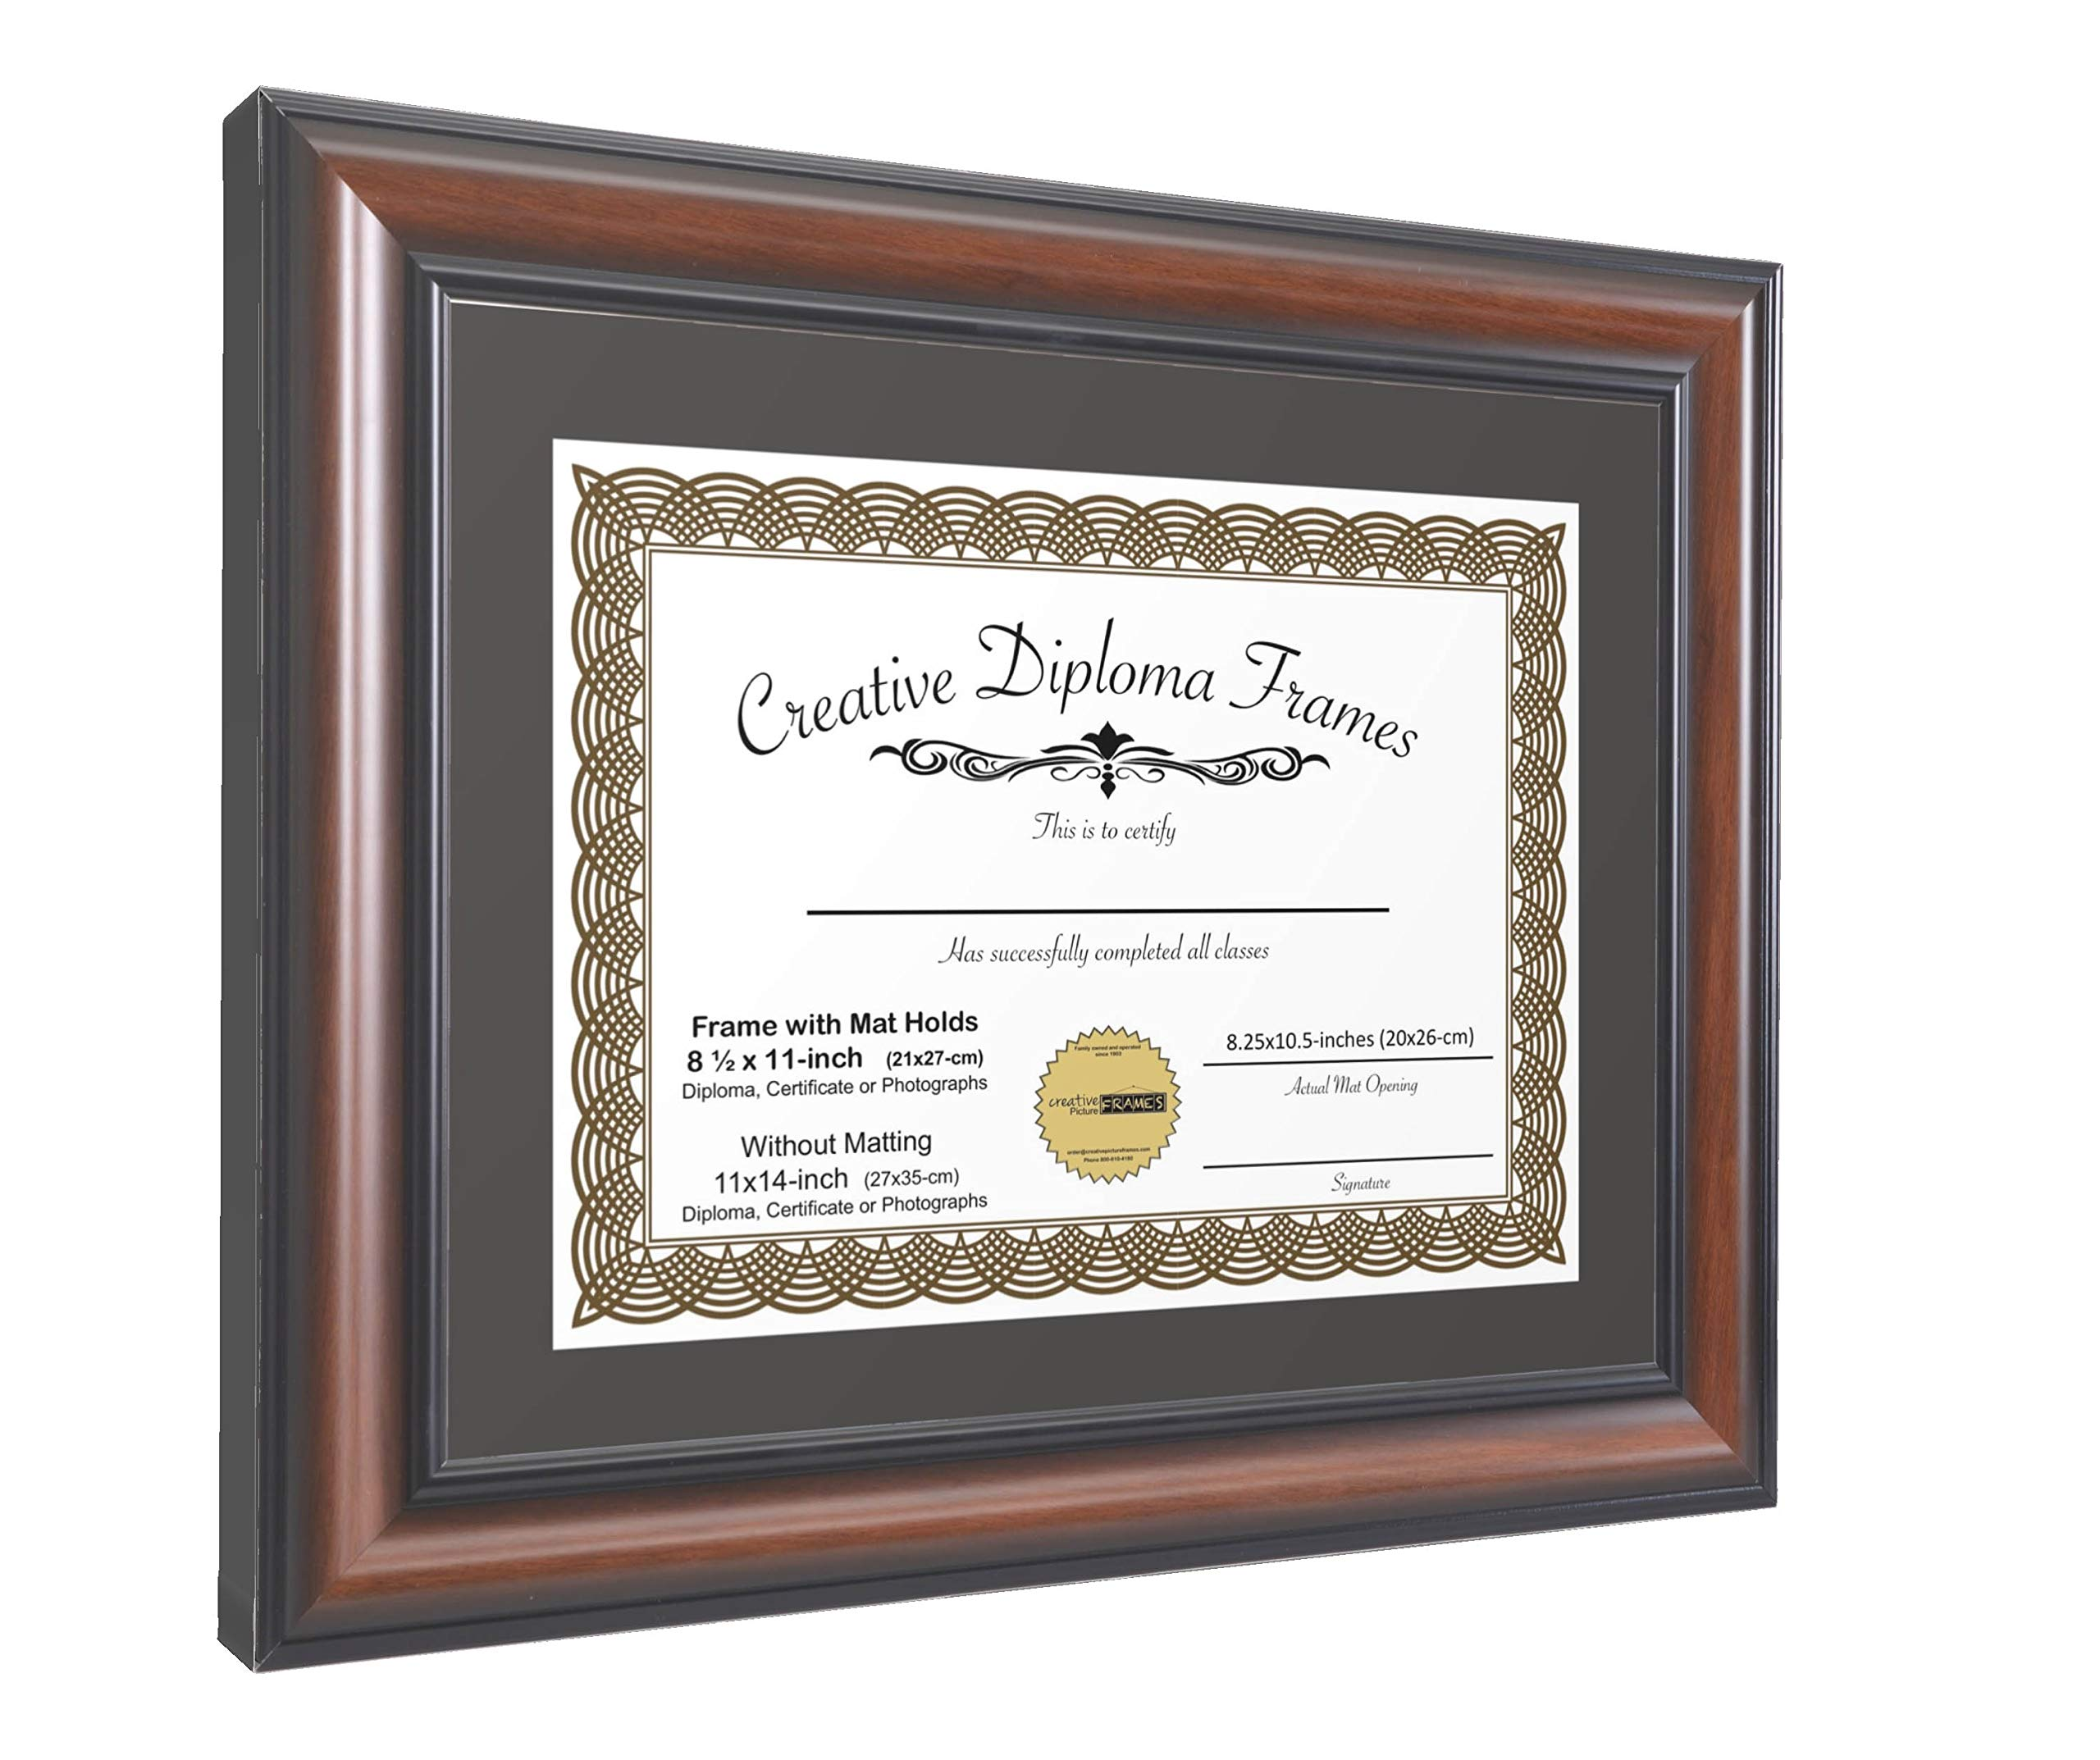 CreativePF [wal5171-b] Eco-Walnut Collection 11x14-inch Wood Finish Picture Frame with Black/White Core Matting Holds 8.5x11-inch Media, with Installed Hangers for Either Orientation by Creative Picture Frames (Image #2)